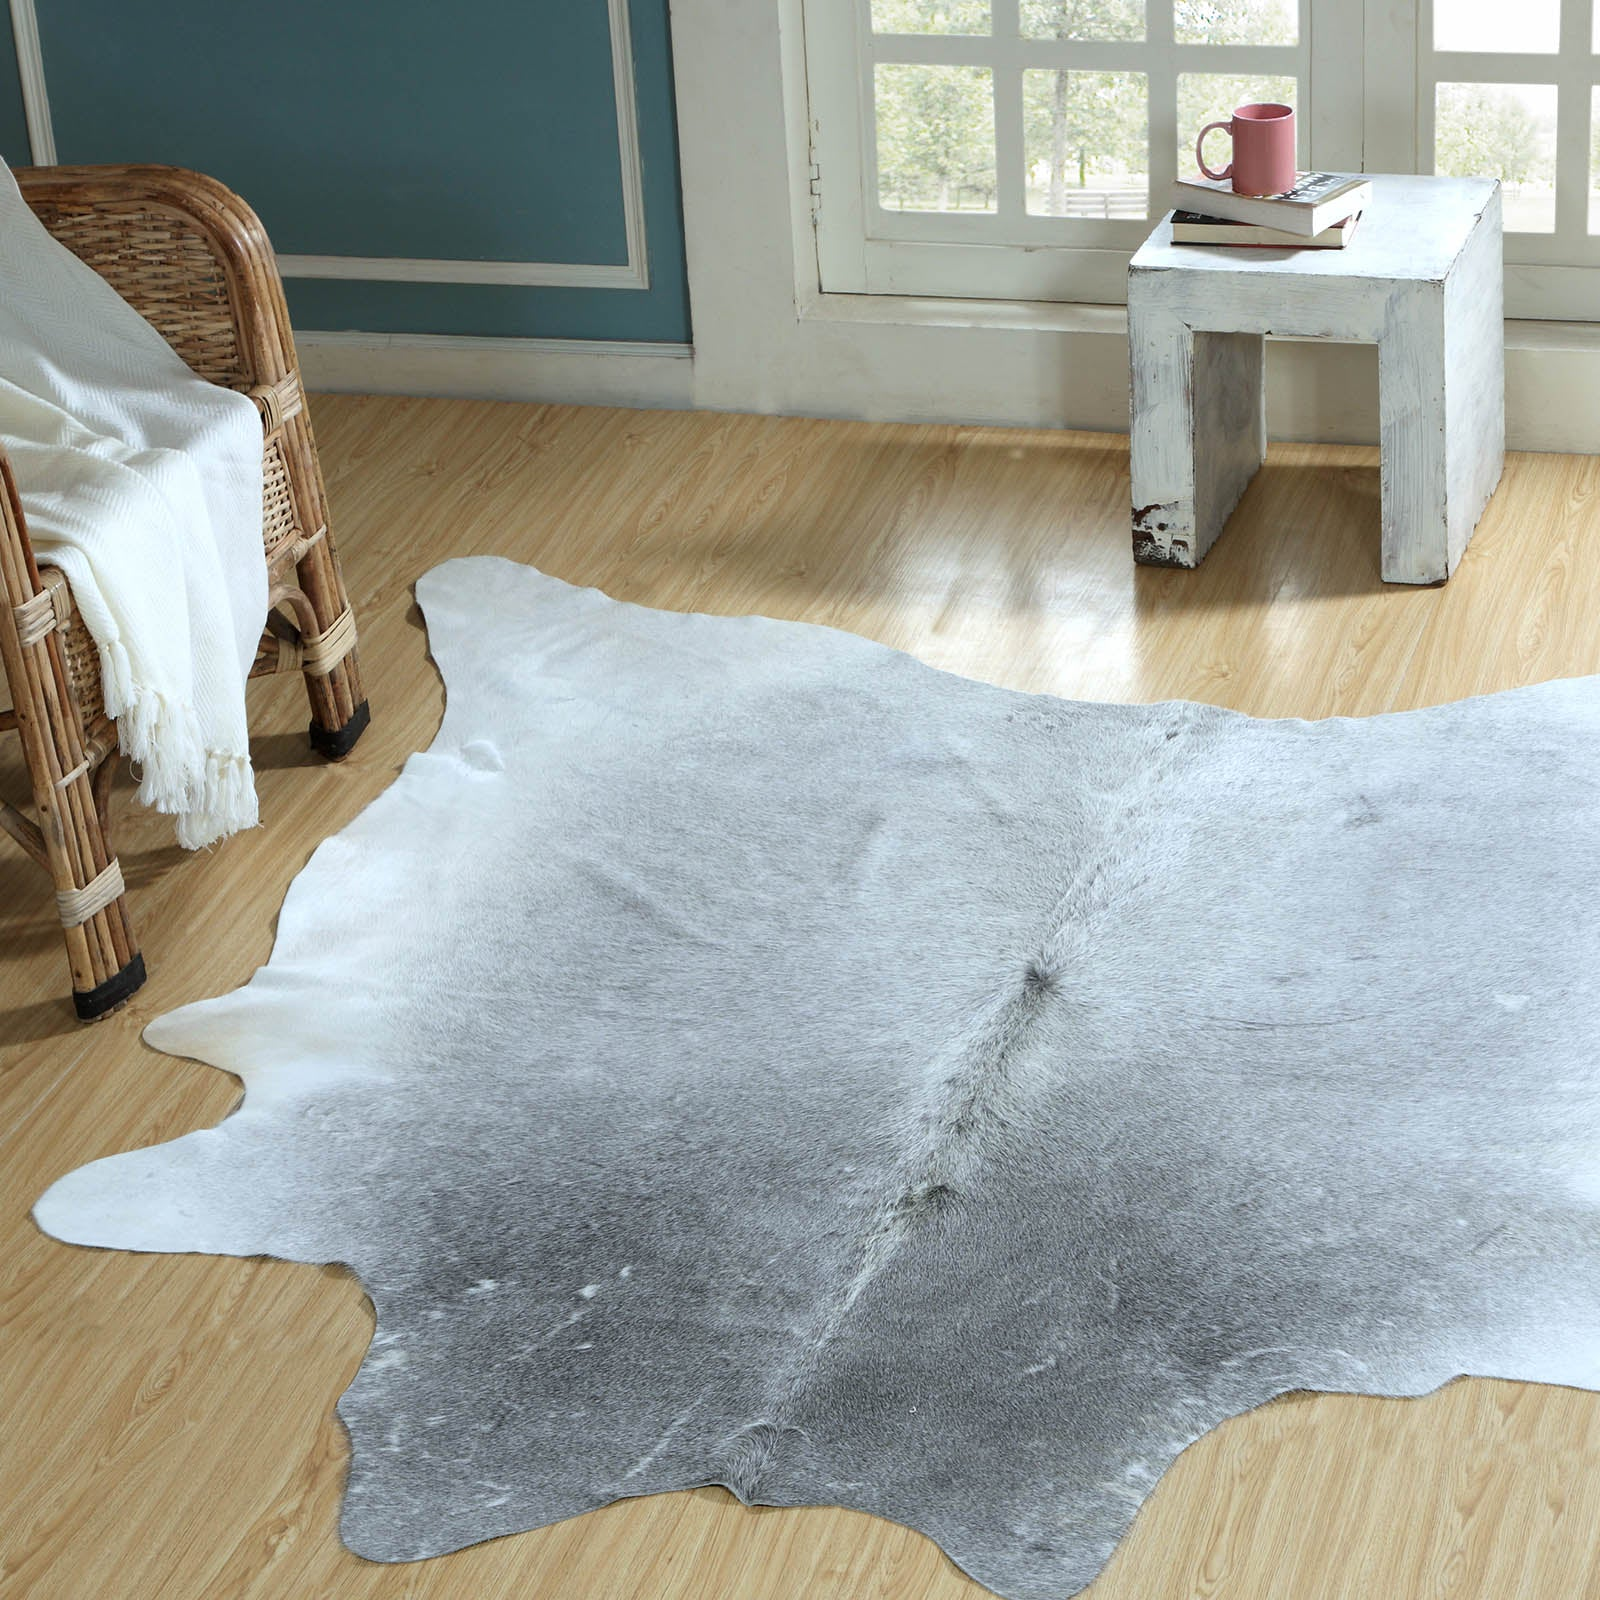 Pre Order 50 Days Delivery 230x160 Cm Natural Cowhide Rug Cow 0085